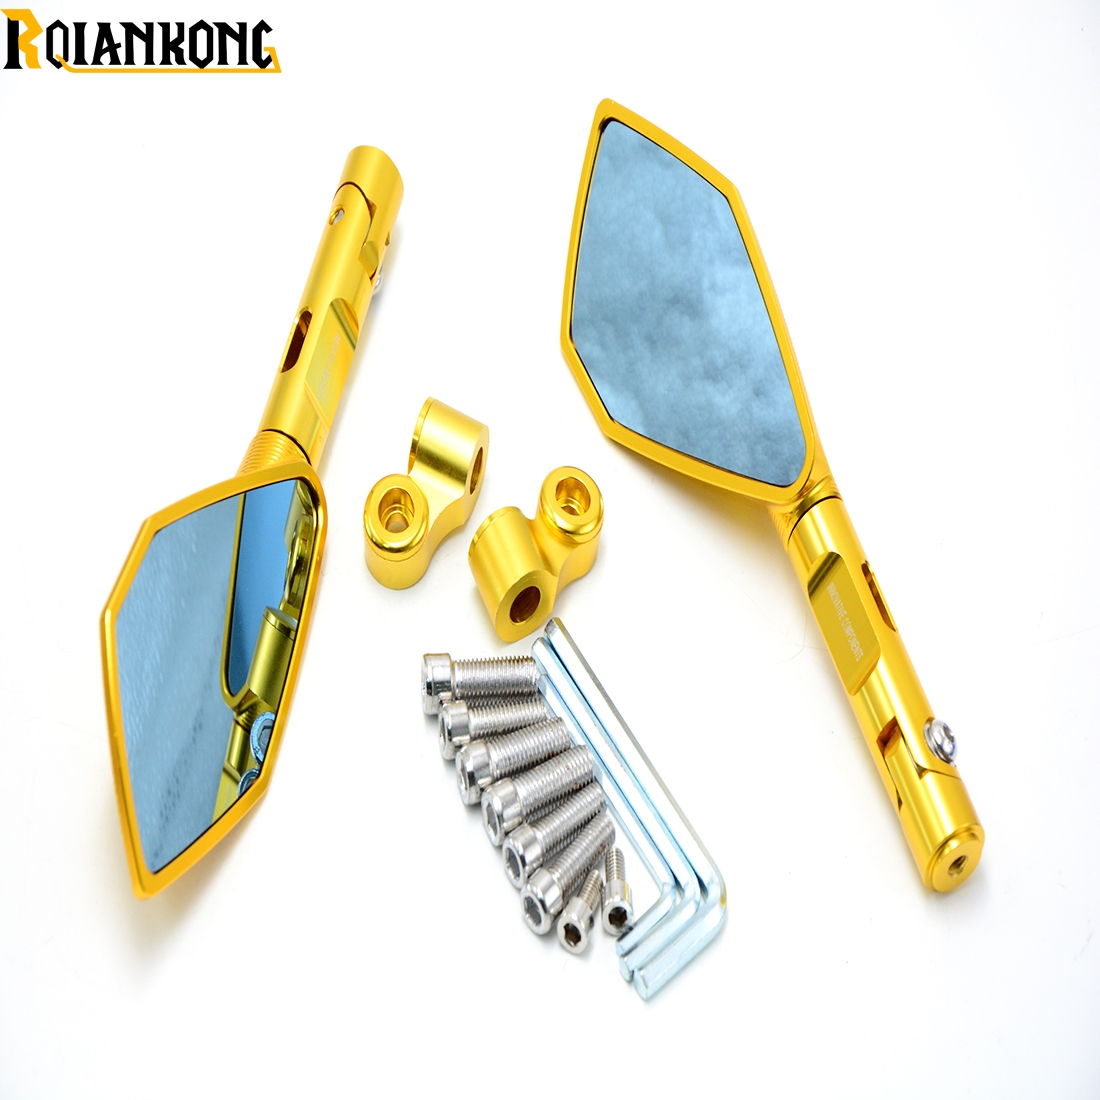 Italy Brand logo mark Motorcycle Rearview side Mirrors CNC Aluminum for Yamaha YZF R1/R125/R15/R1M/R25/R3/R6 rearview mirrors common for yamaha mt09 07 zx6r zx7r zx10r zx14r ninja650r er6n cnc mirror motorcycle scooter accessories